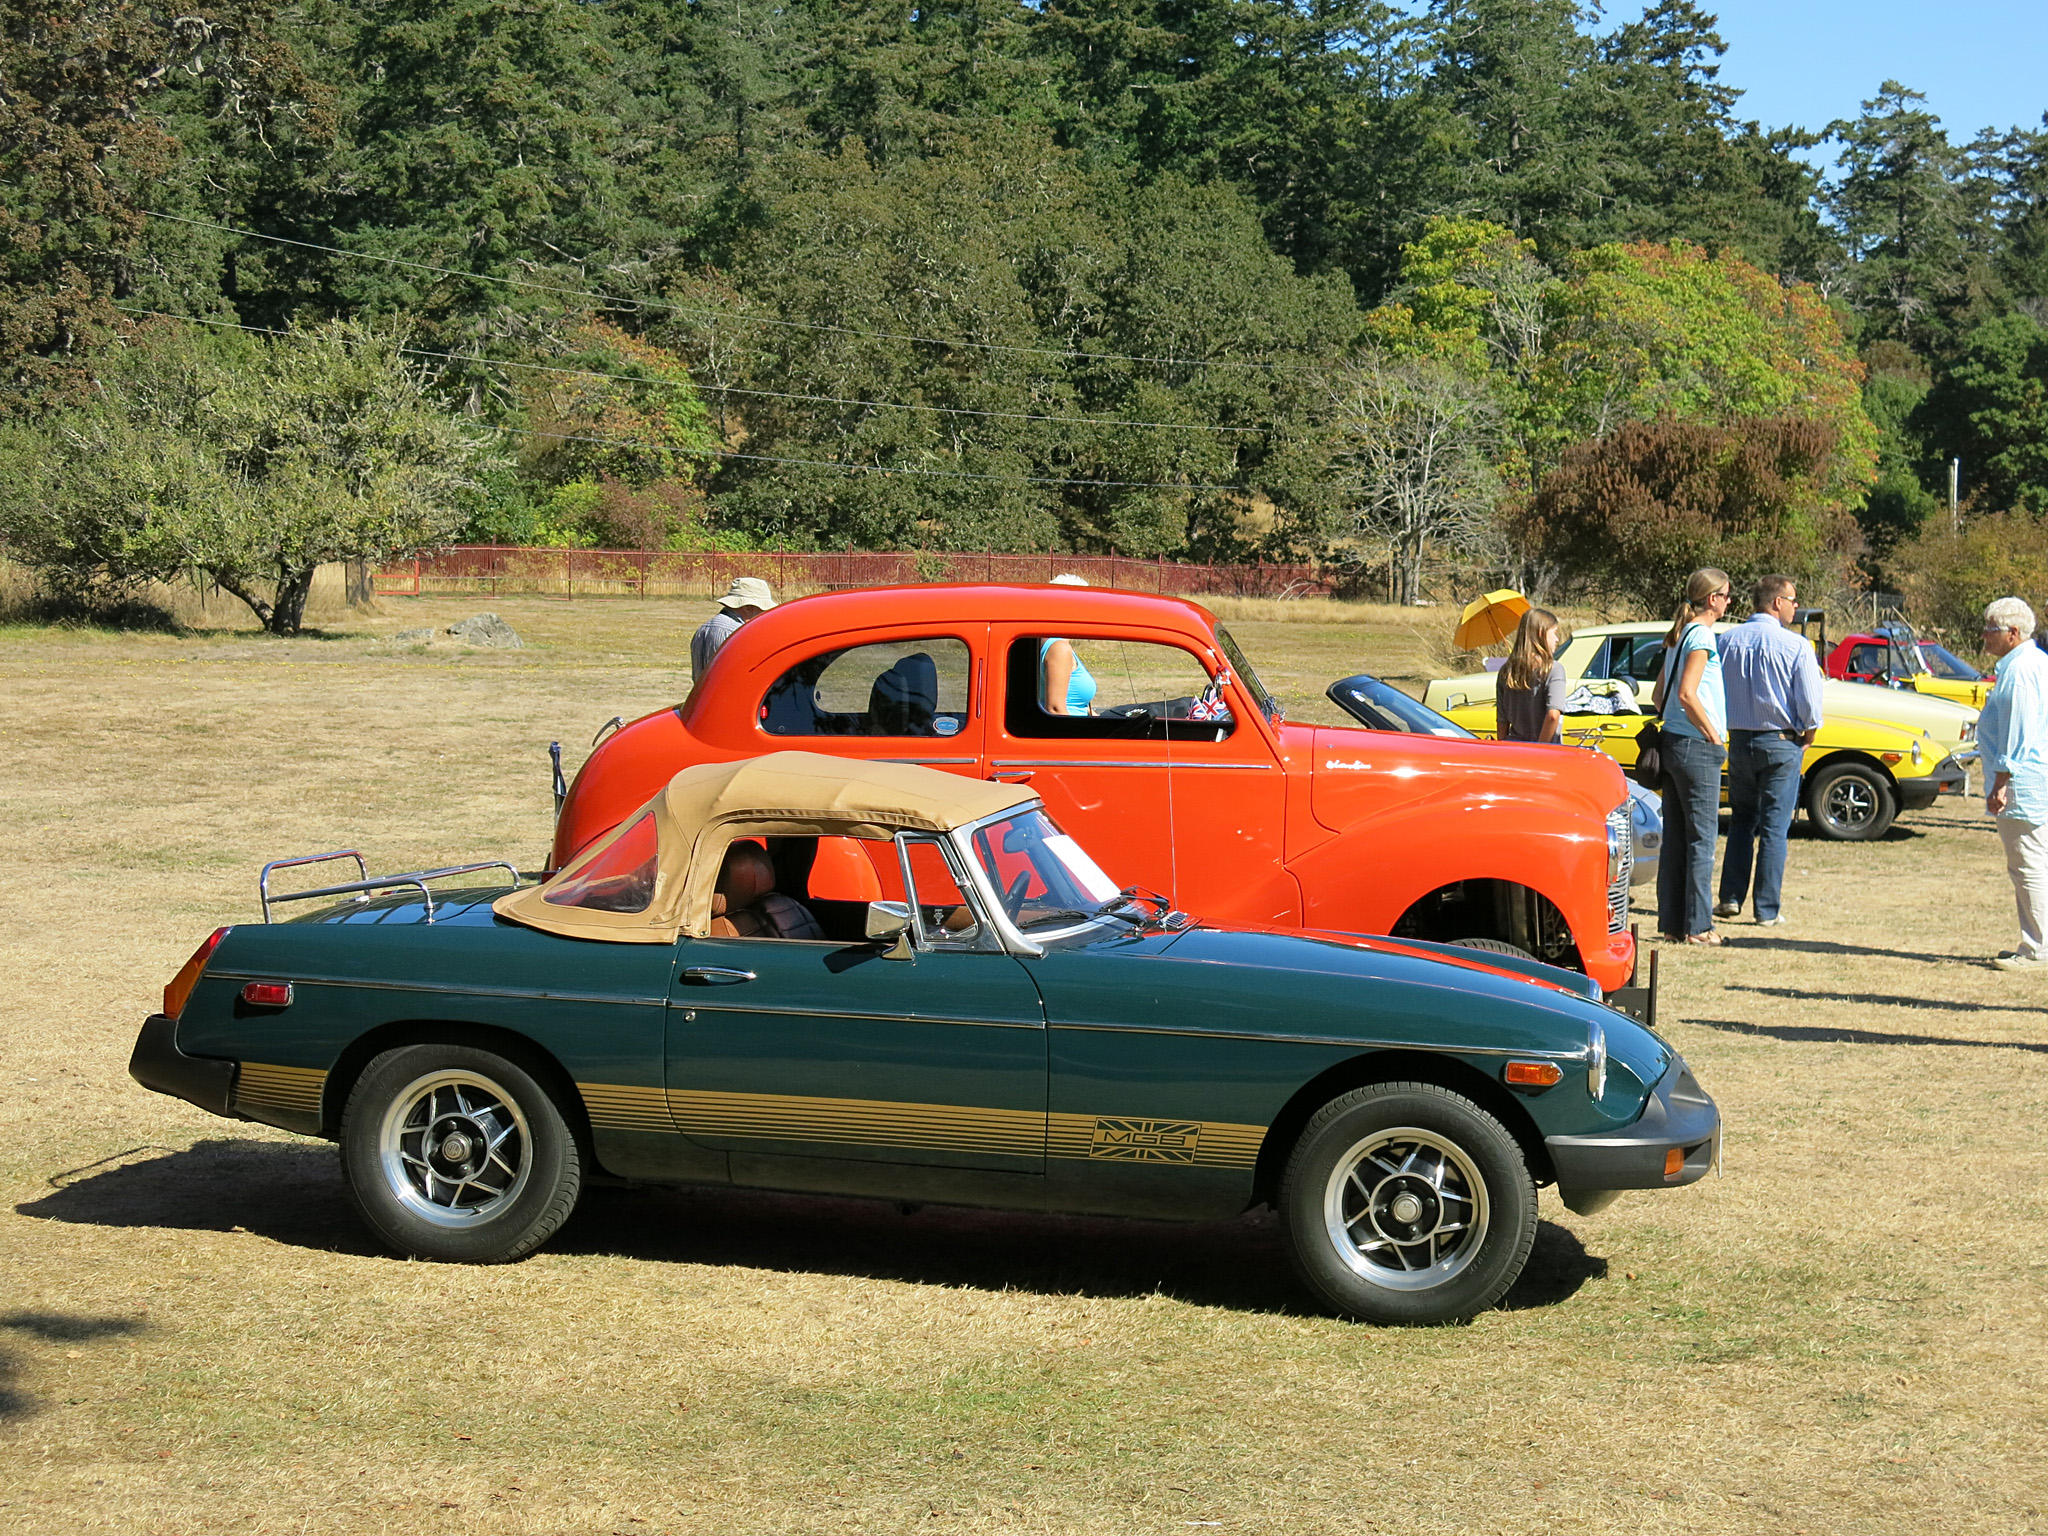 This 1978 MGB is presented in its rare and original color scheme.